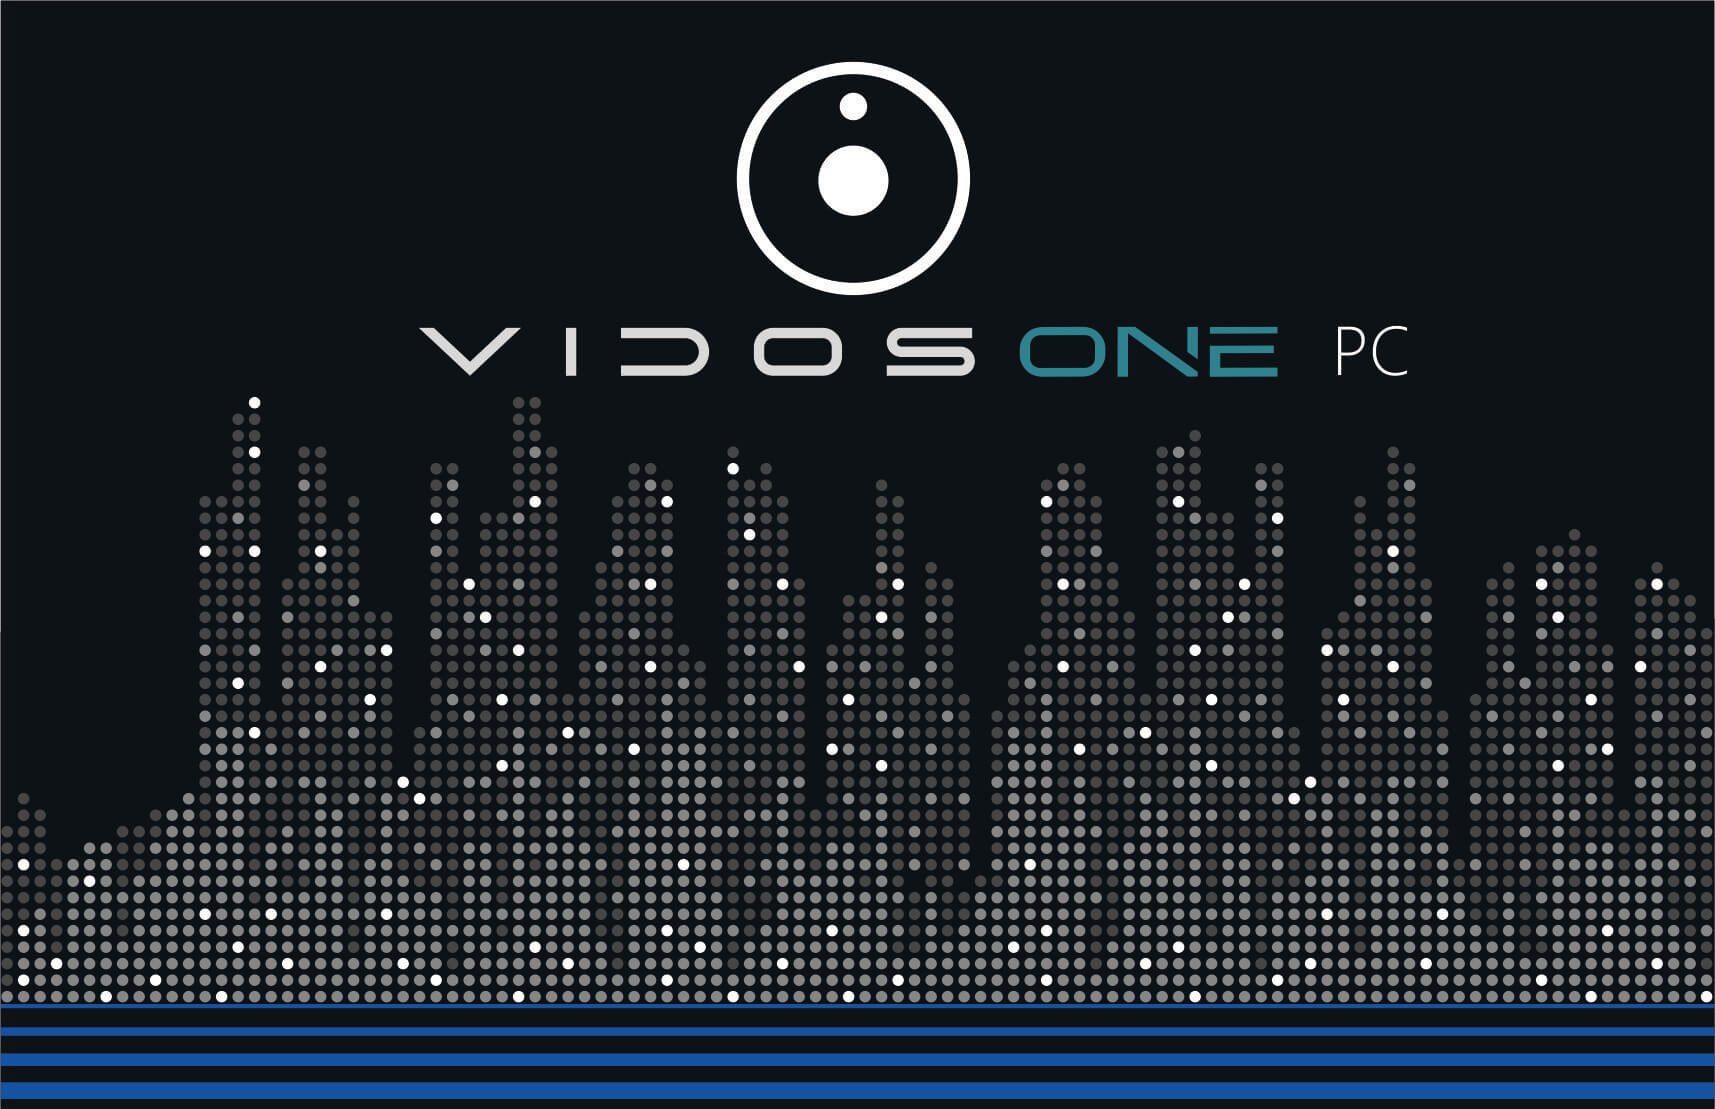 VIDOS ONE PC